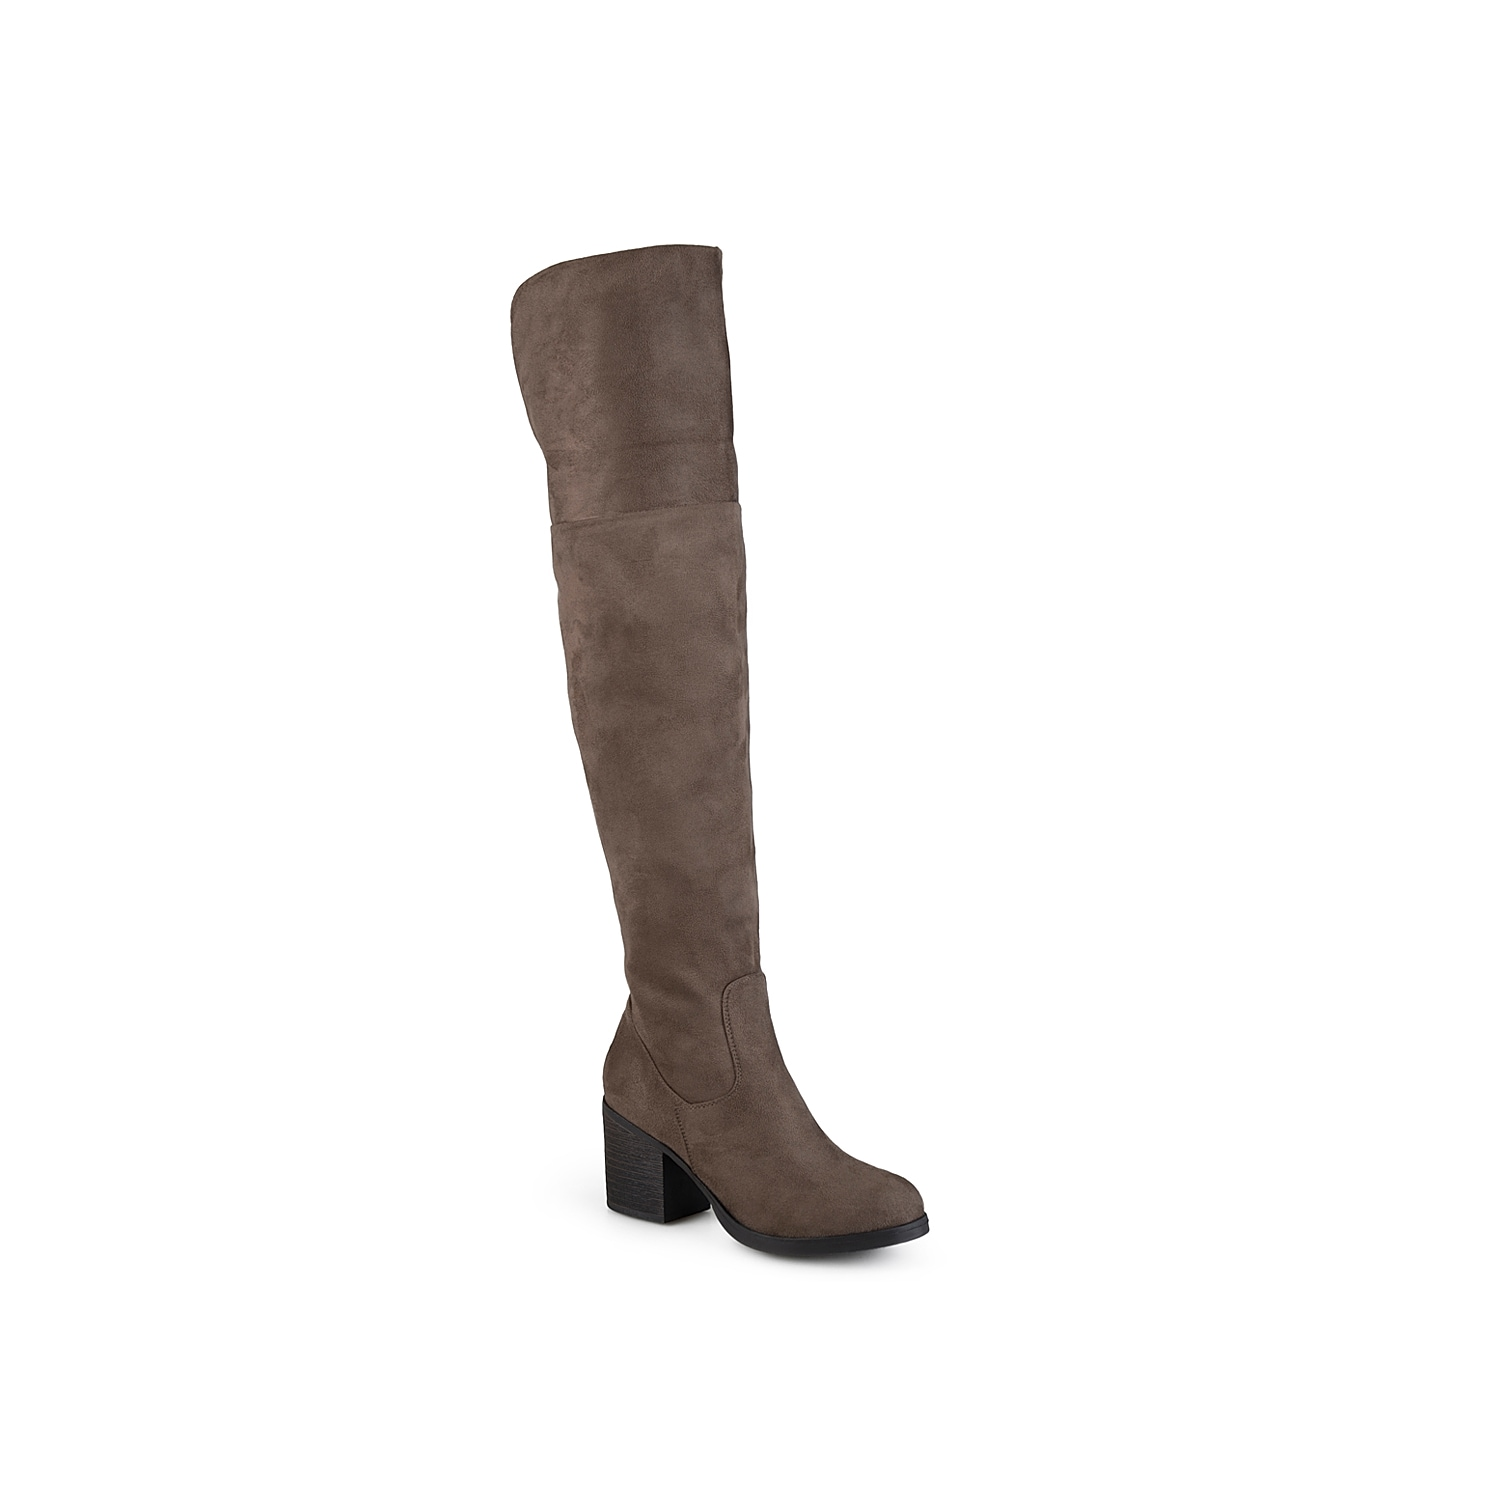 With a clean silhouette and a chic block heel, these versatile thigh high boots have all the details you need to complete your fashionable fall look. Zip up in the Sana over the knee boots from Journee Collection to add a trendy touch to your laid back look.Click here for Boot Measuring Guide.